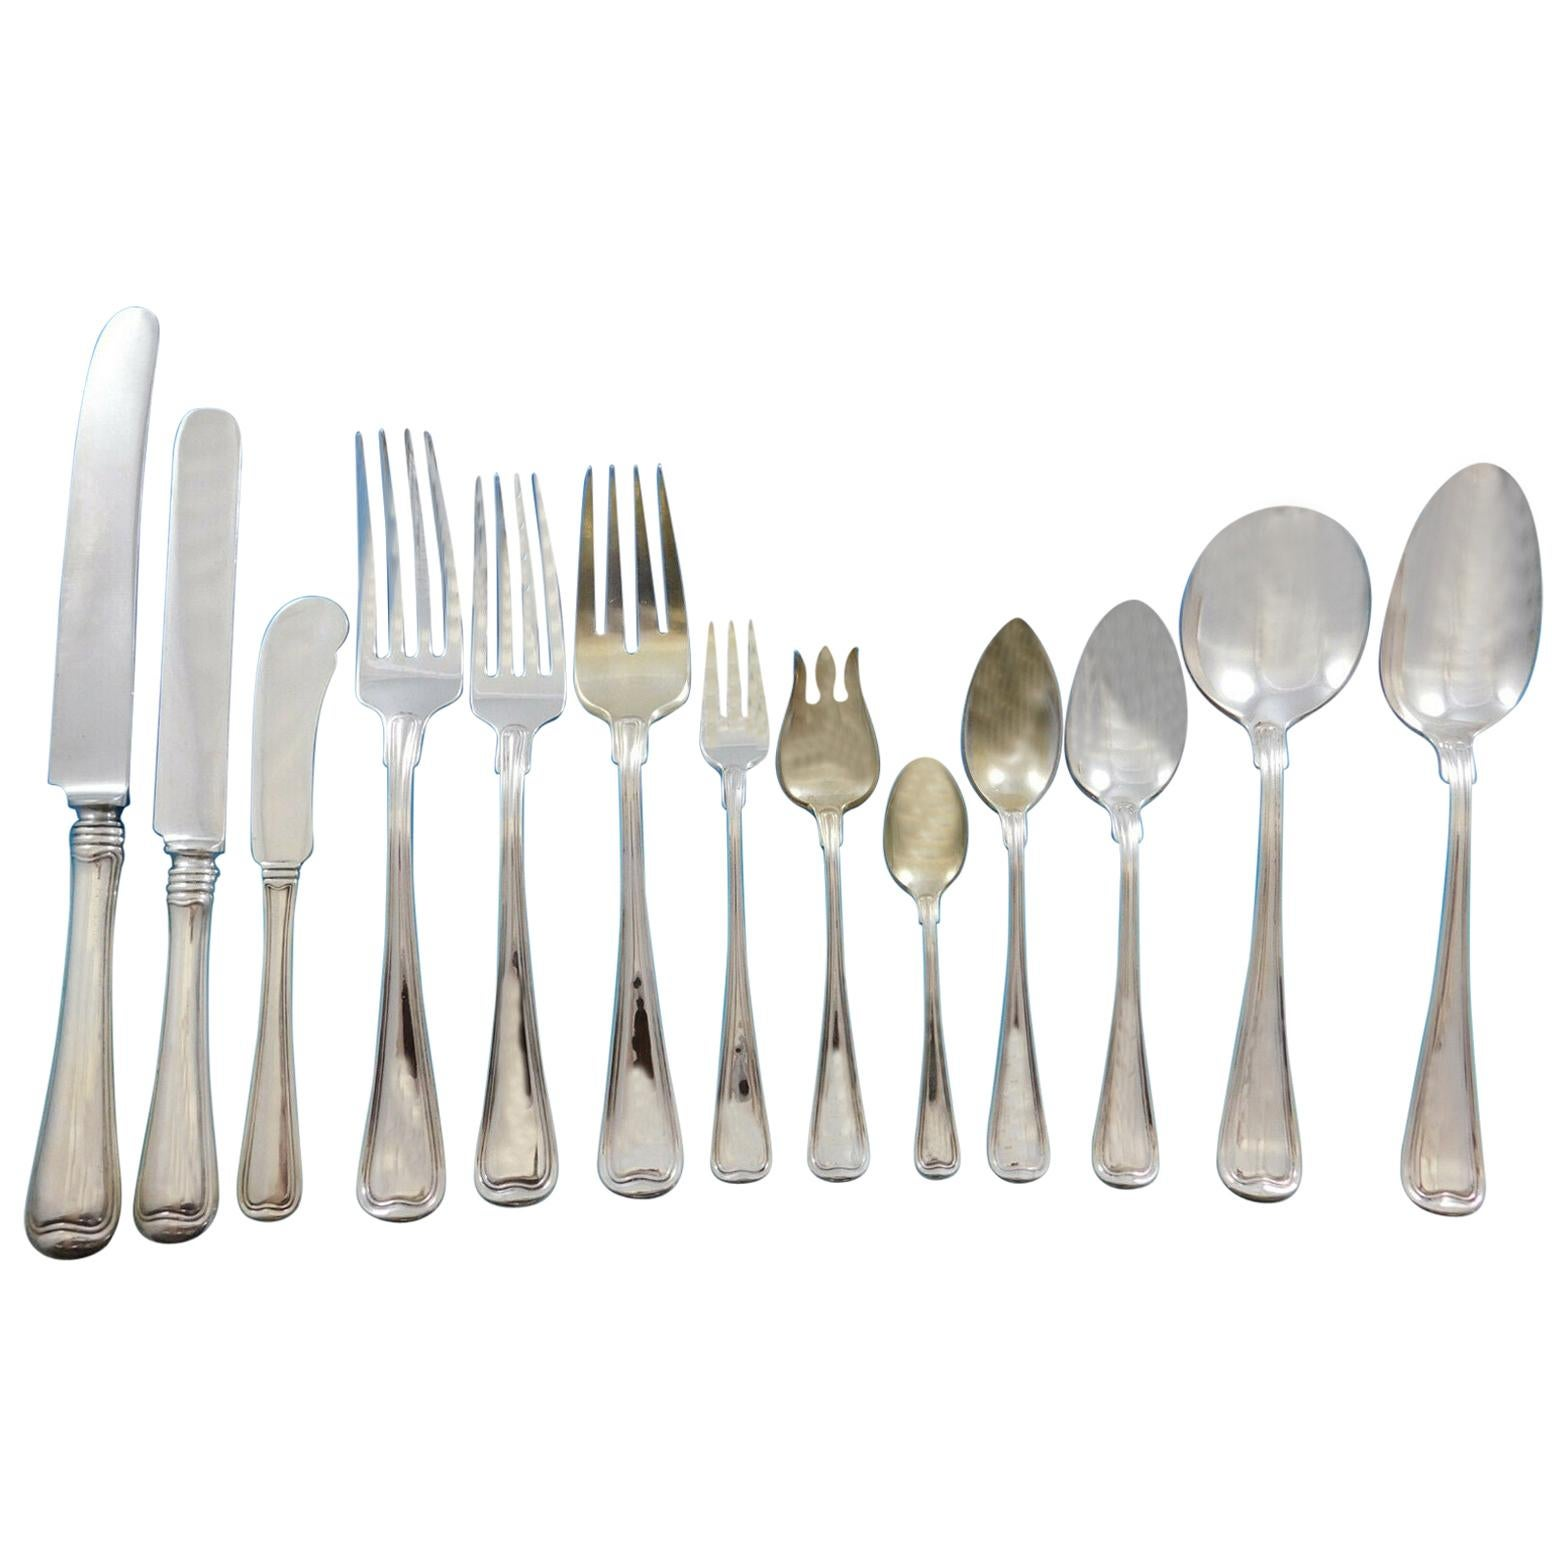 Old French by Gorham Sterling Silver Flatware Set for 12 Service 179 Pcs Dinner